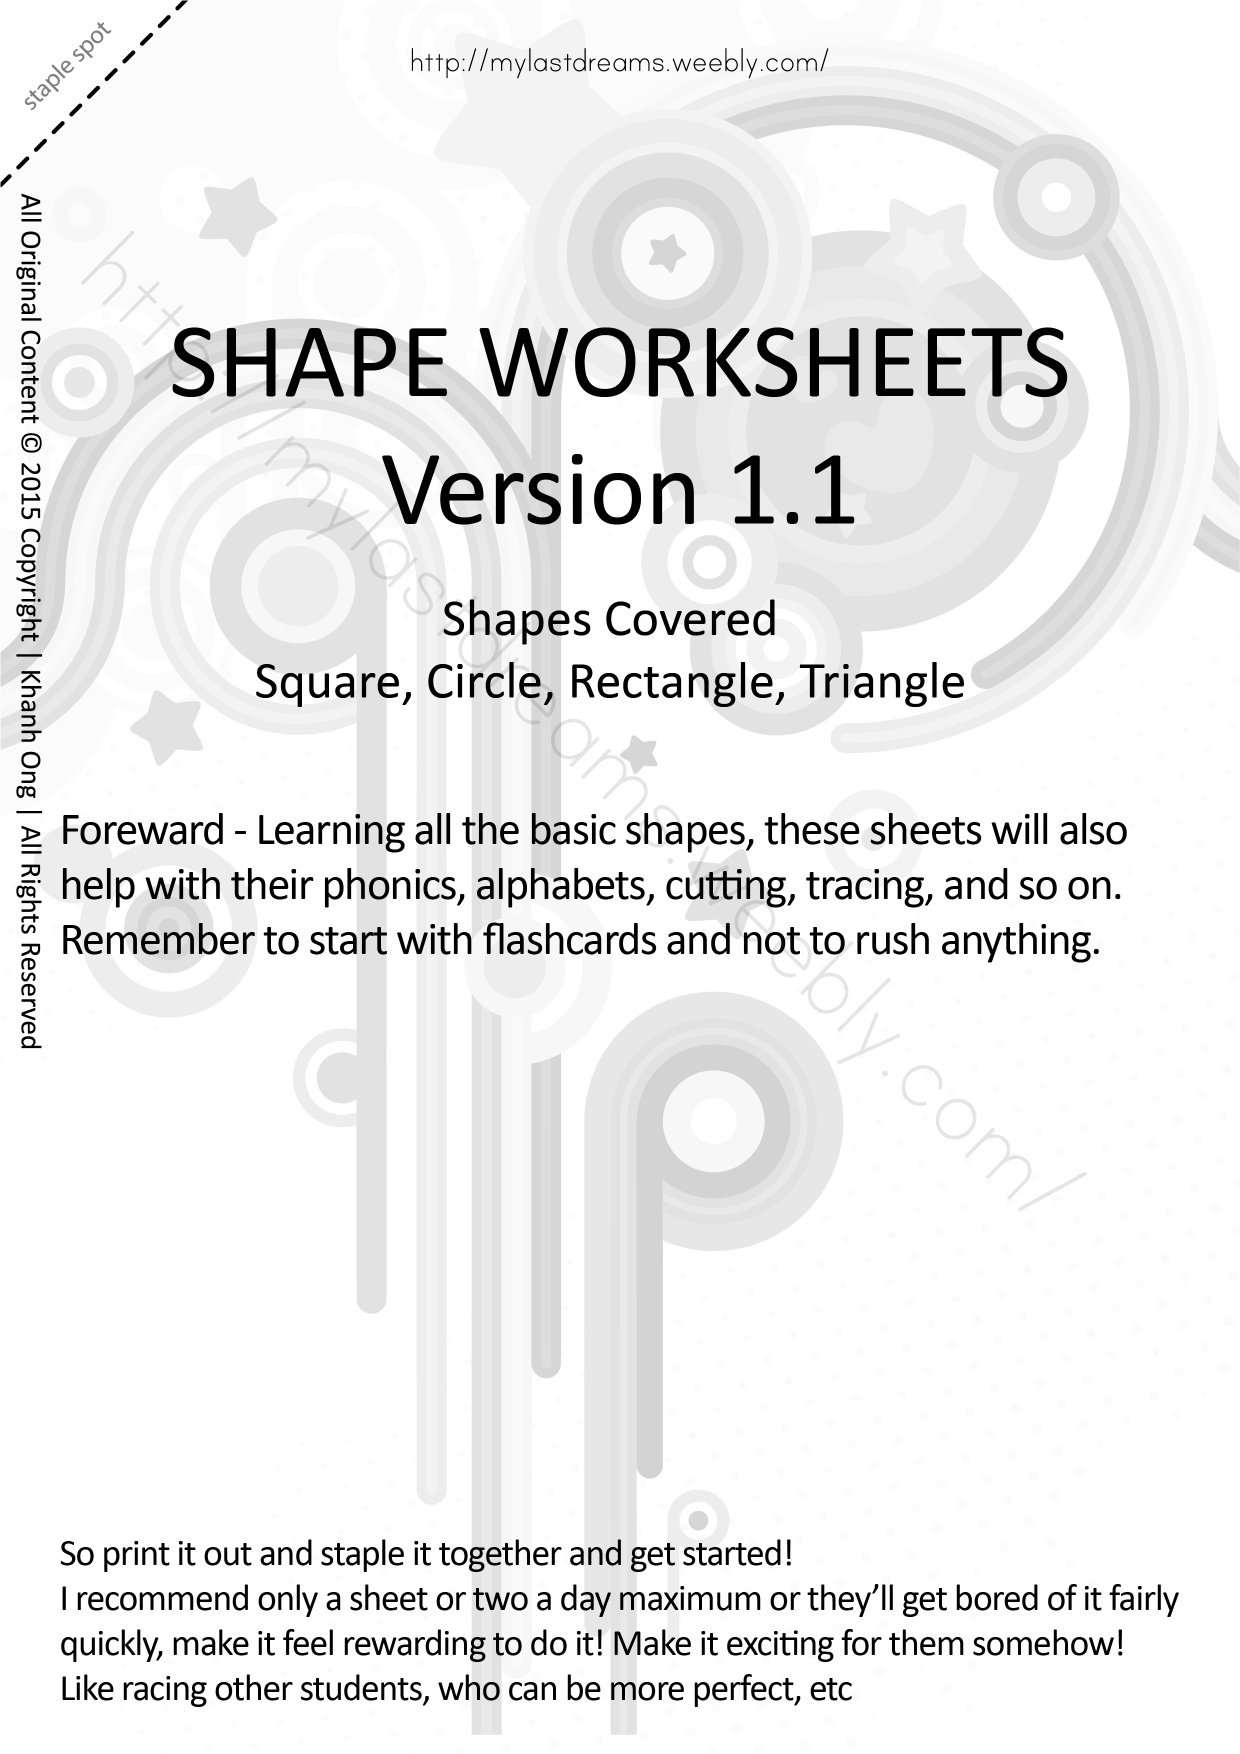 MLD - Basic Shapes Worksheets - Part 1 - A4 Sized